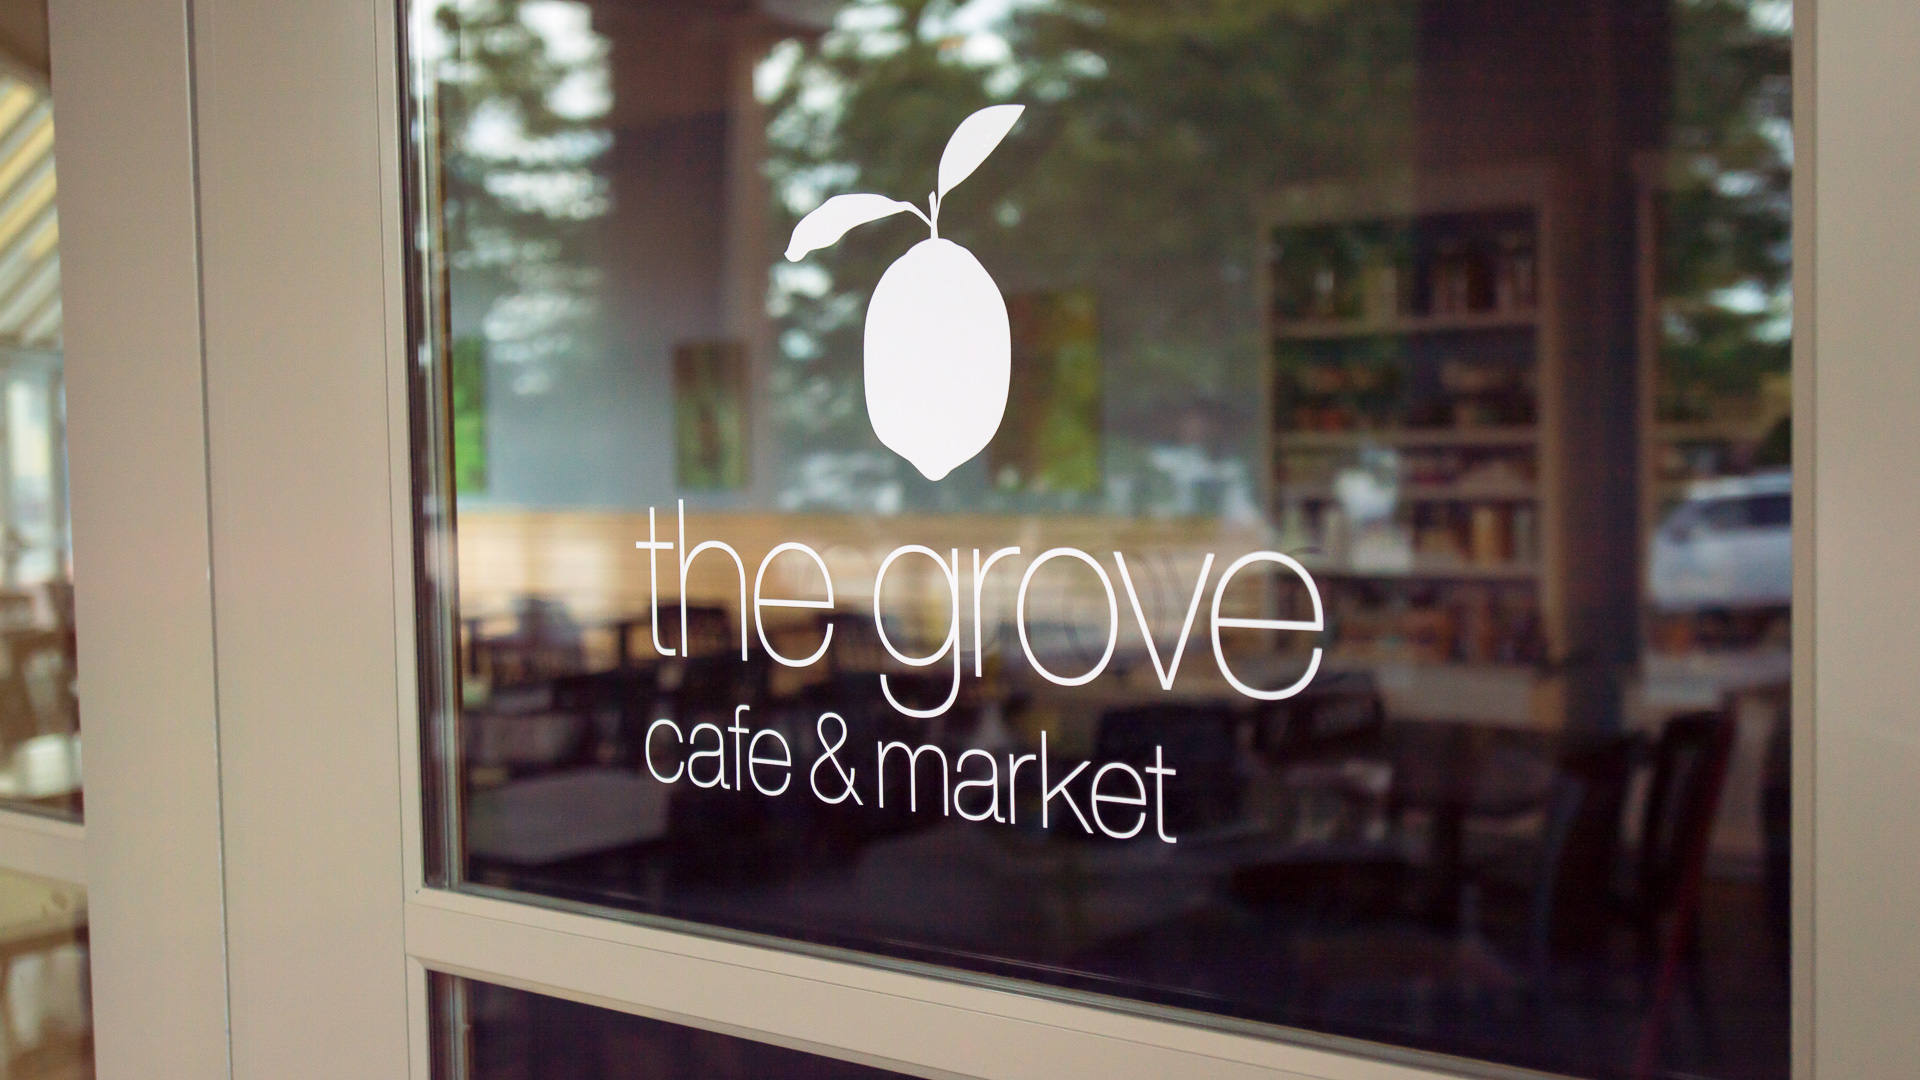 The Grove Cafe & Market